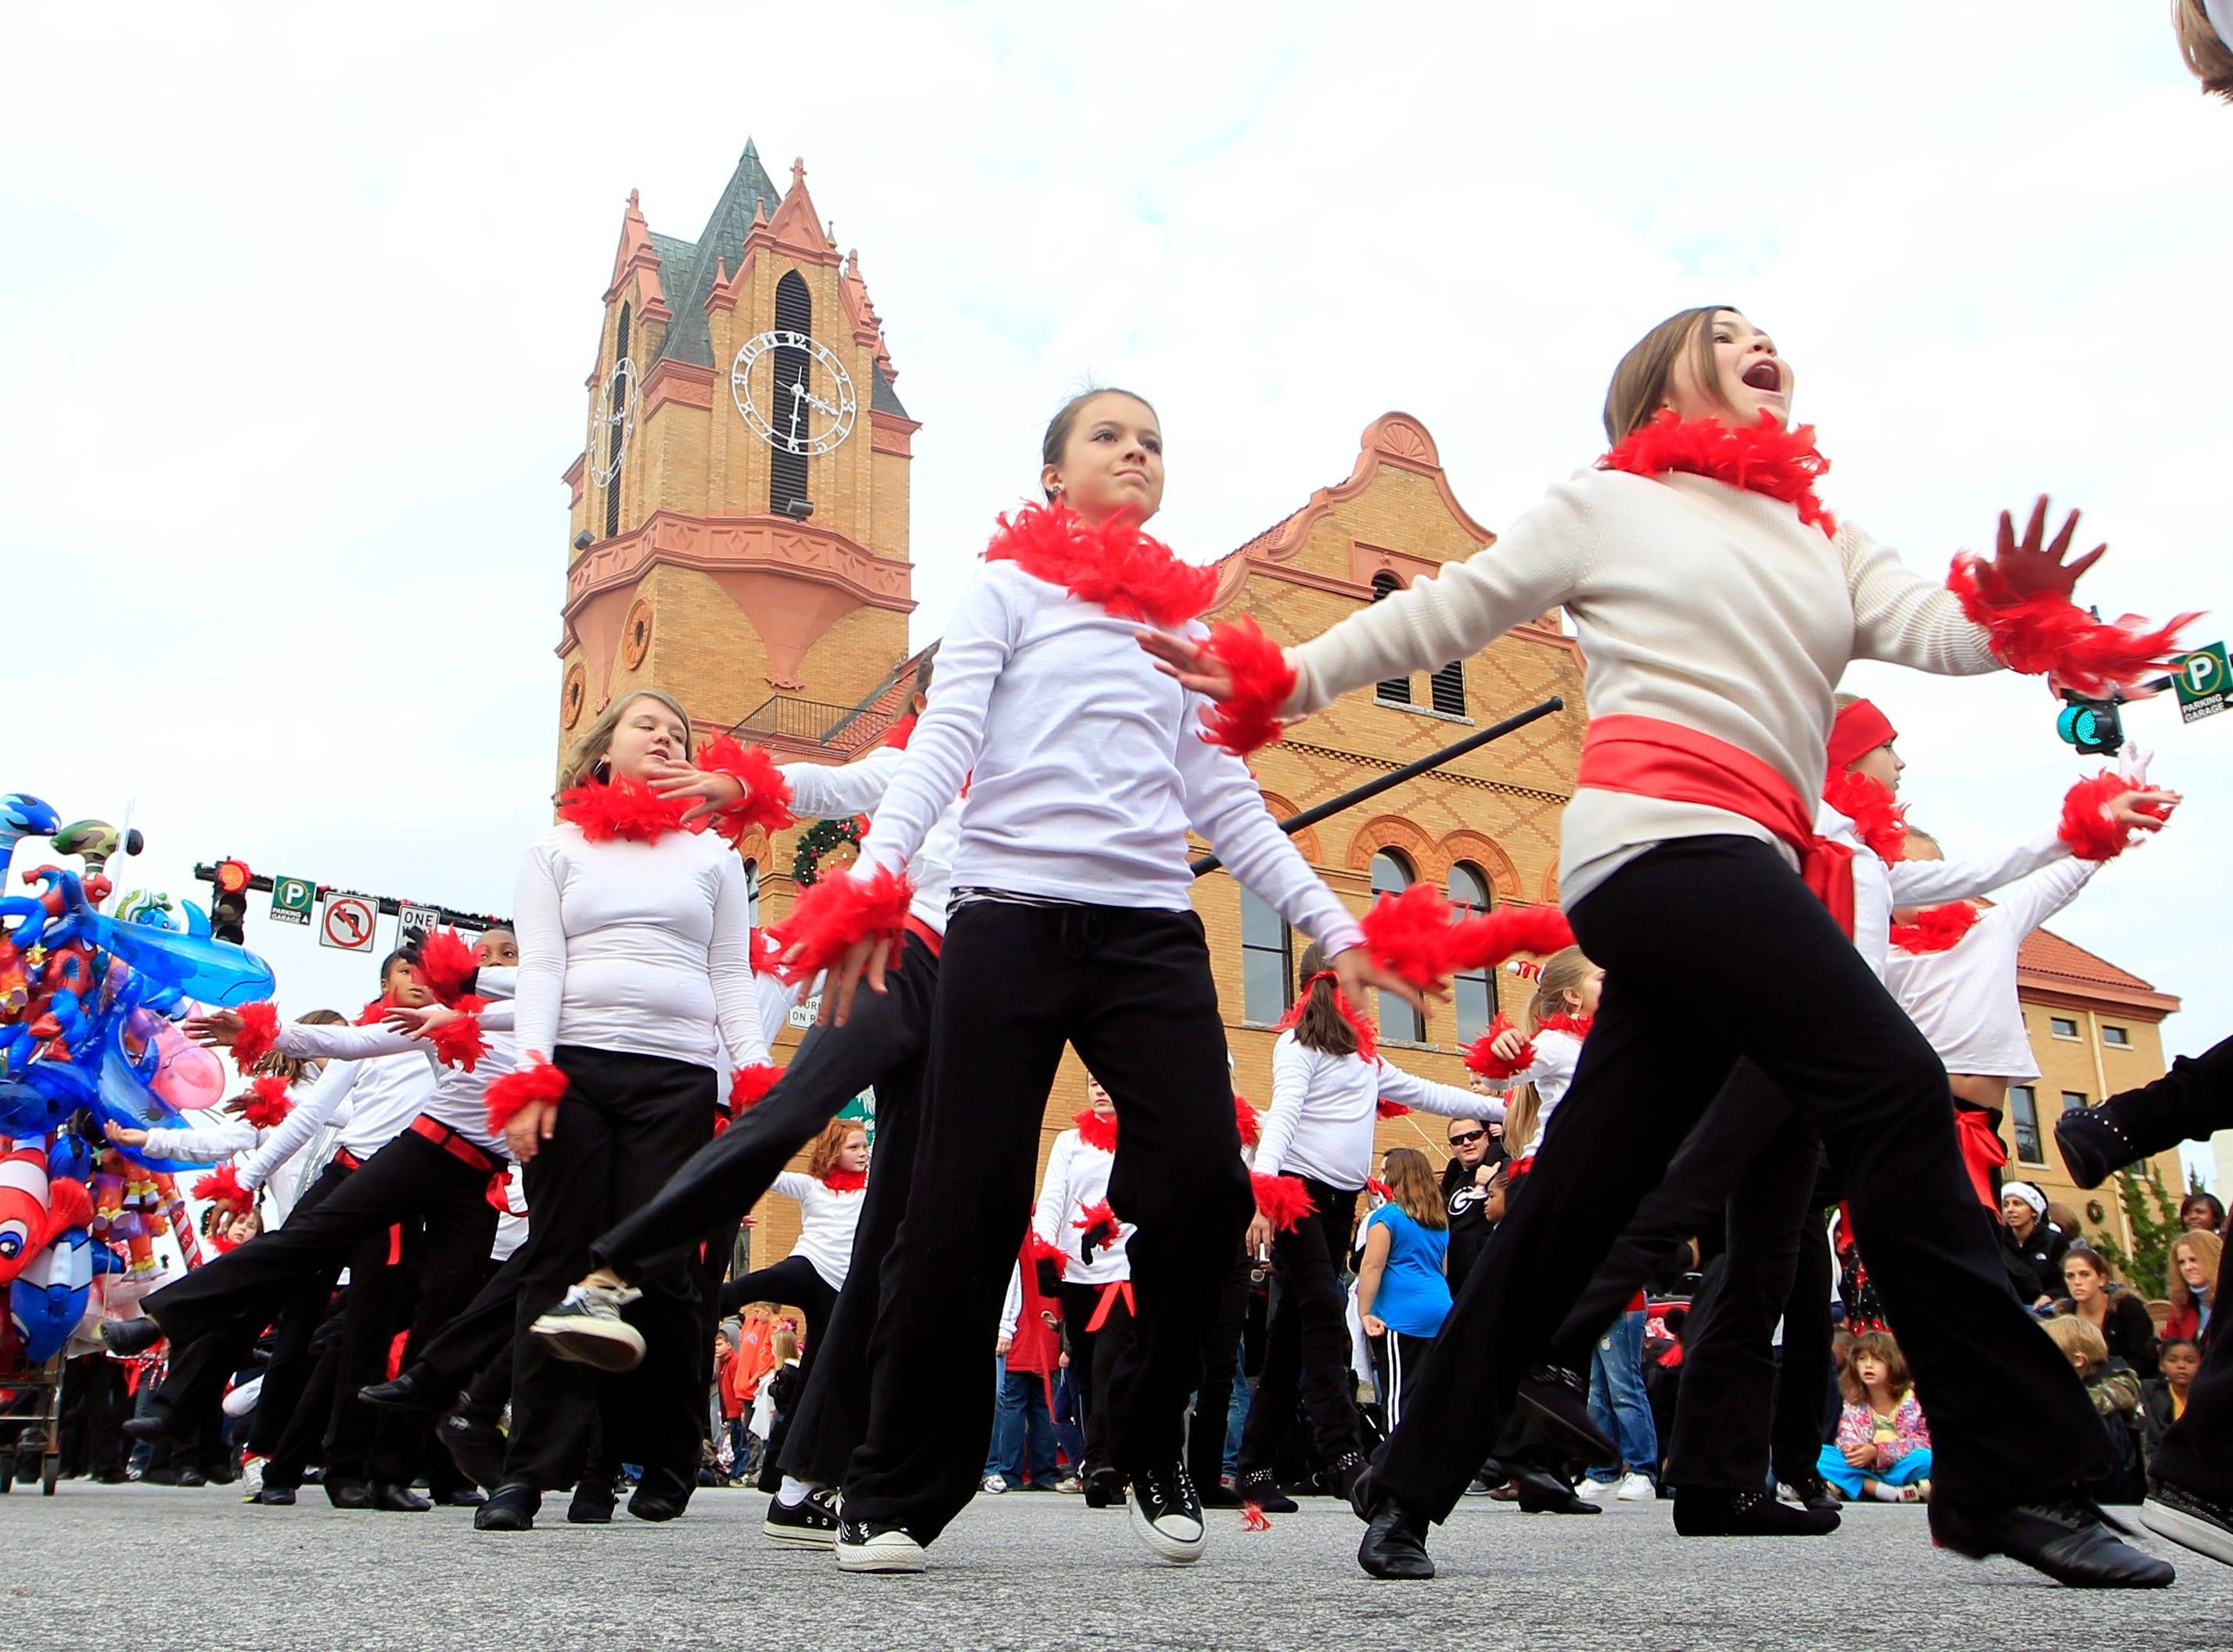 Dancers perform a routine on the downtown square during the Anderson Christmas parade in 2011.